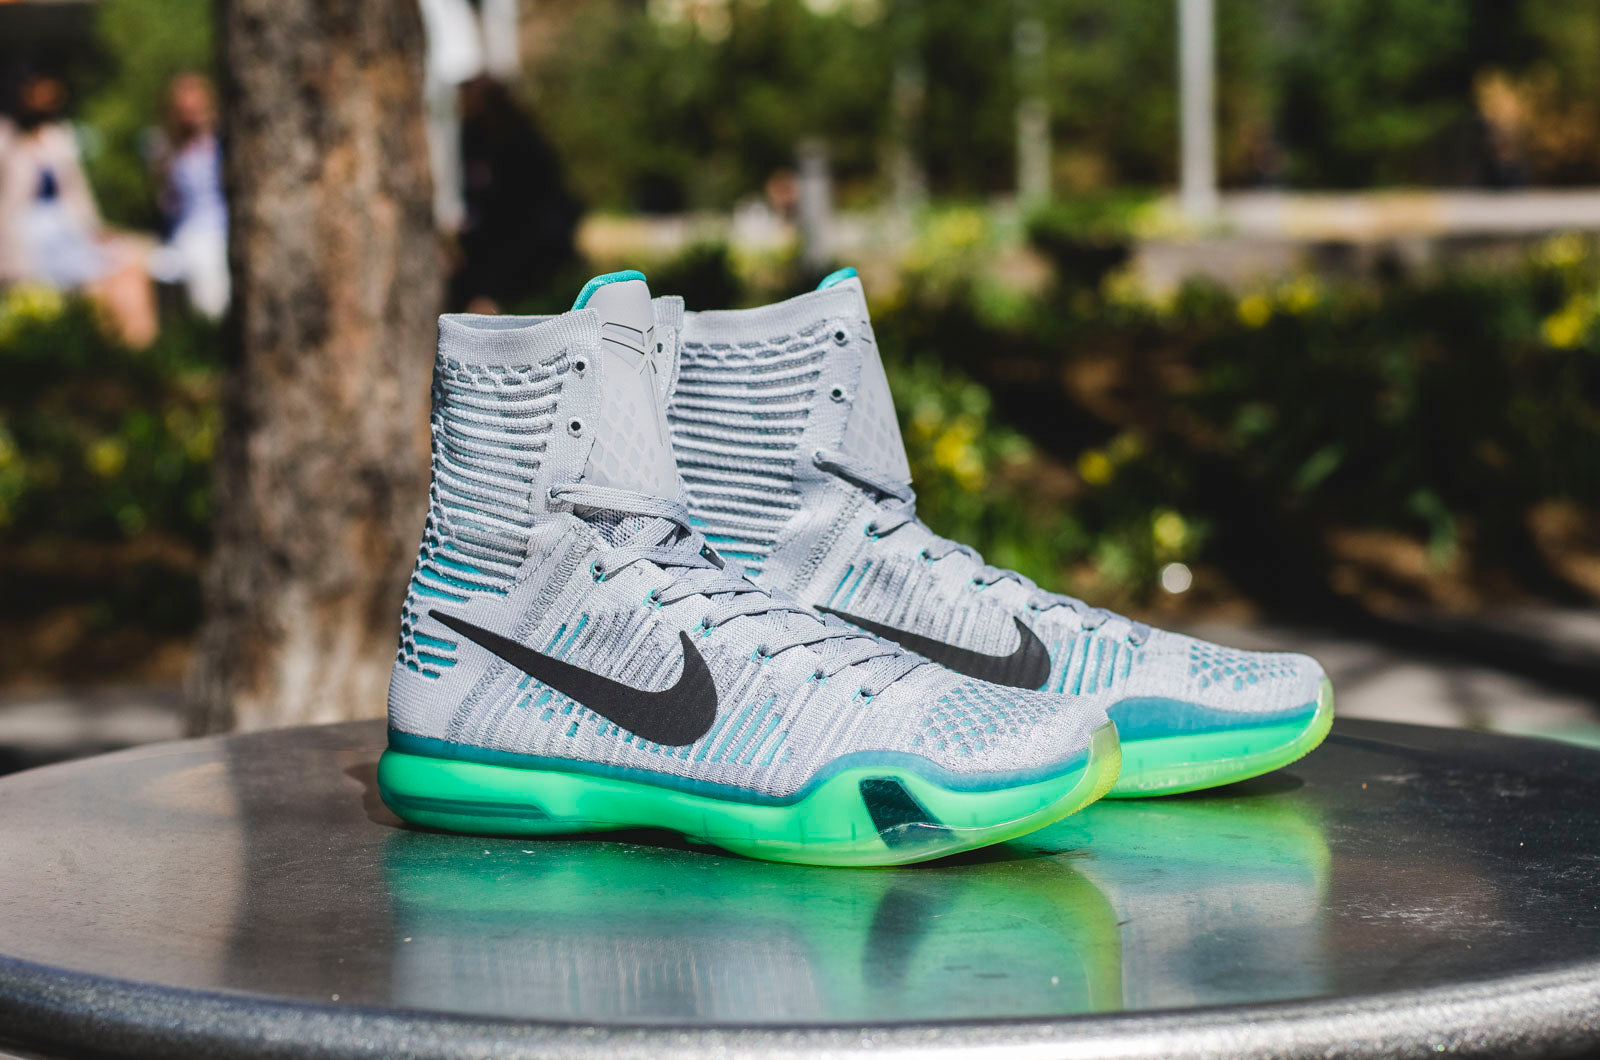 sale retailer 7ec0a 8d492 Direct insights from Kobe Bryant, Kevin Durant and LeBron James have helped  Nike fundamentally evolve basketball shoes, leading to new construction  methods, ...